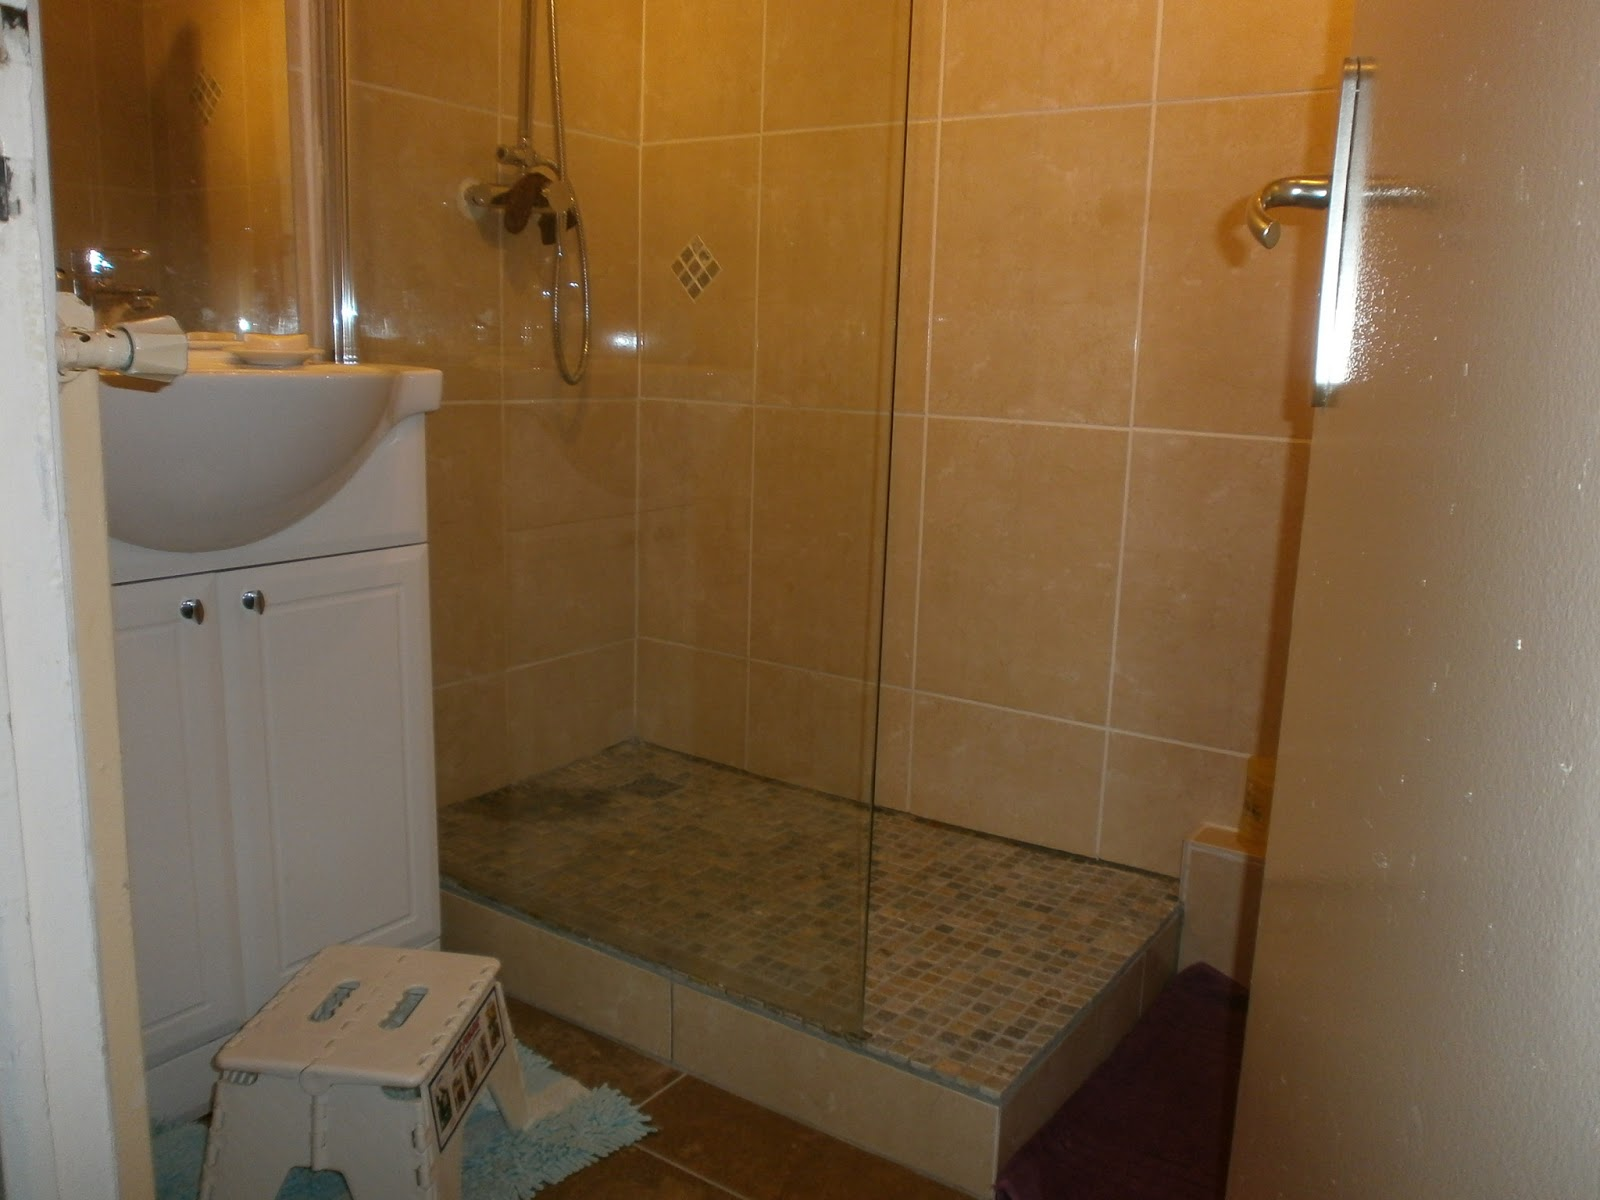 Grenoble entreprise de carrelage concept design et for Photos de douche a l italienne